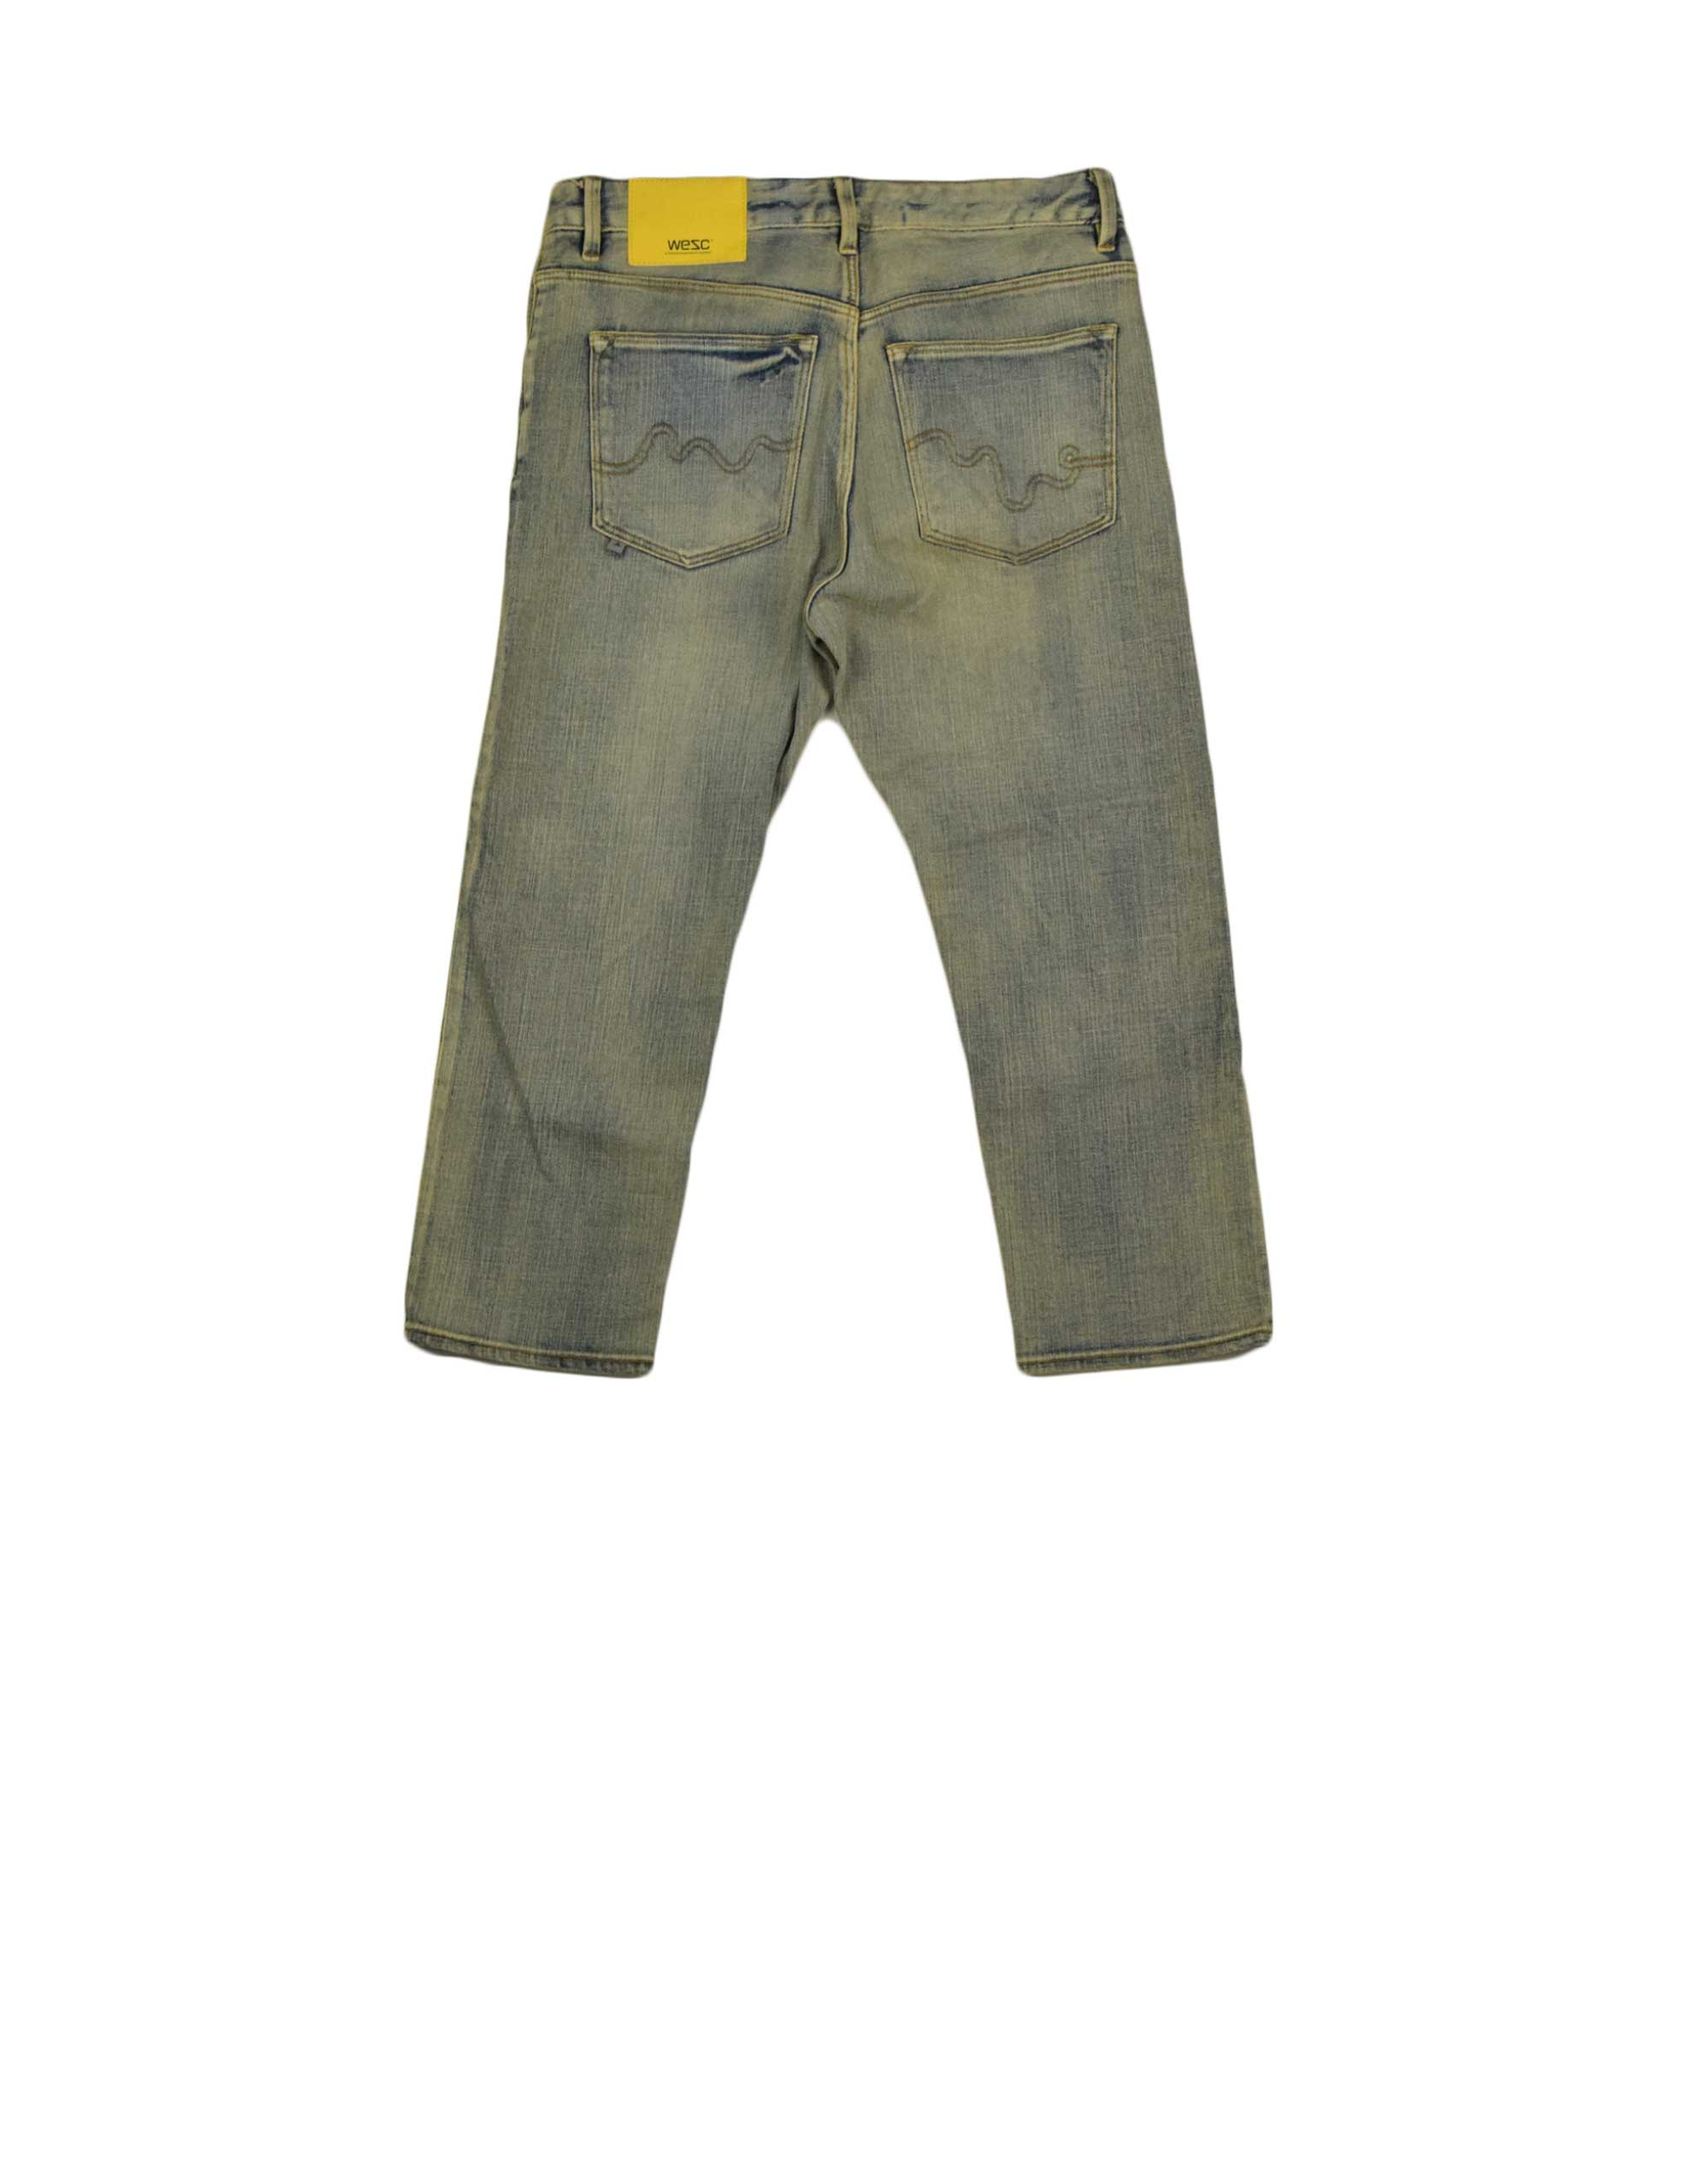 Wesc Louisa Tapered Cropped (091WE-00113) Faded Stretch